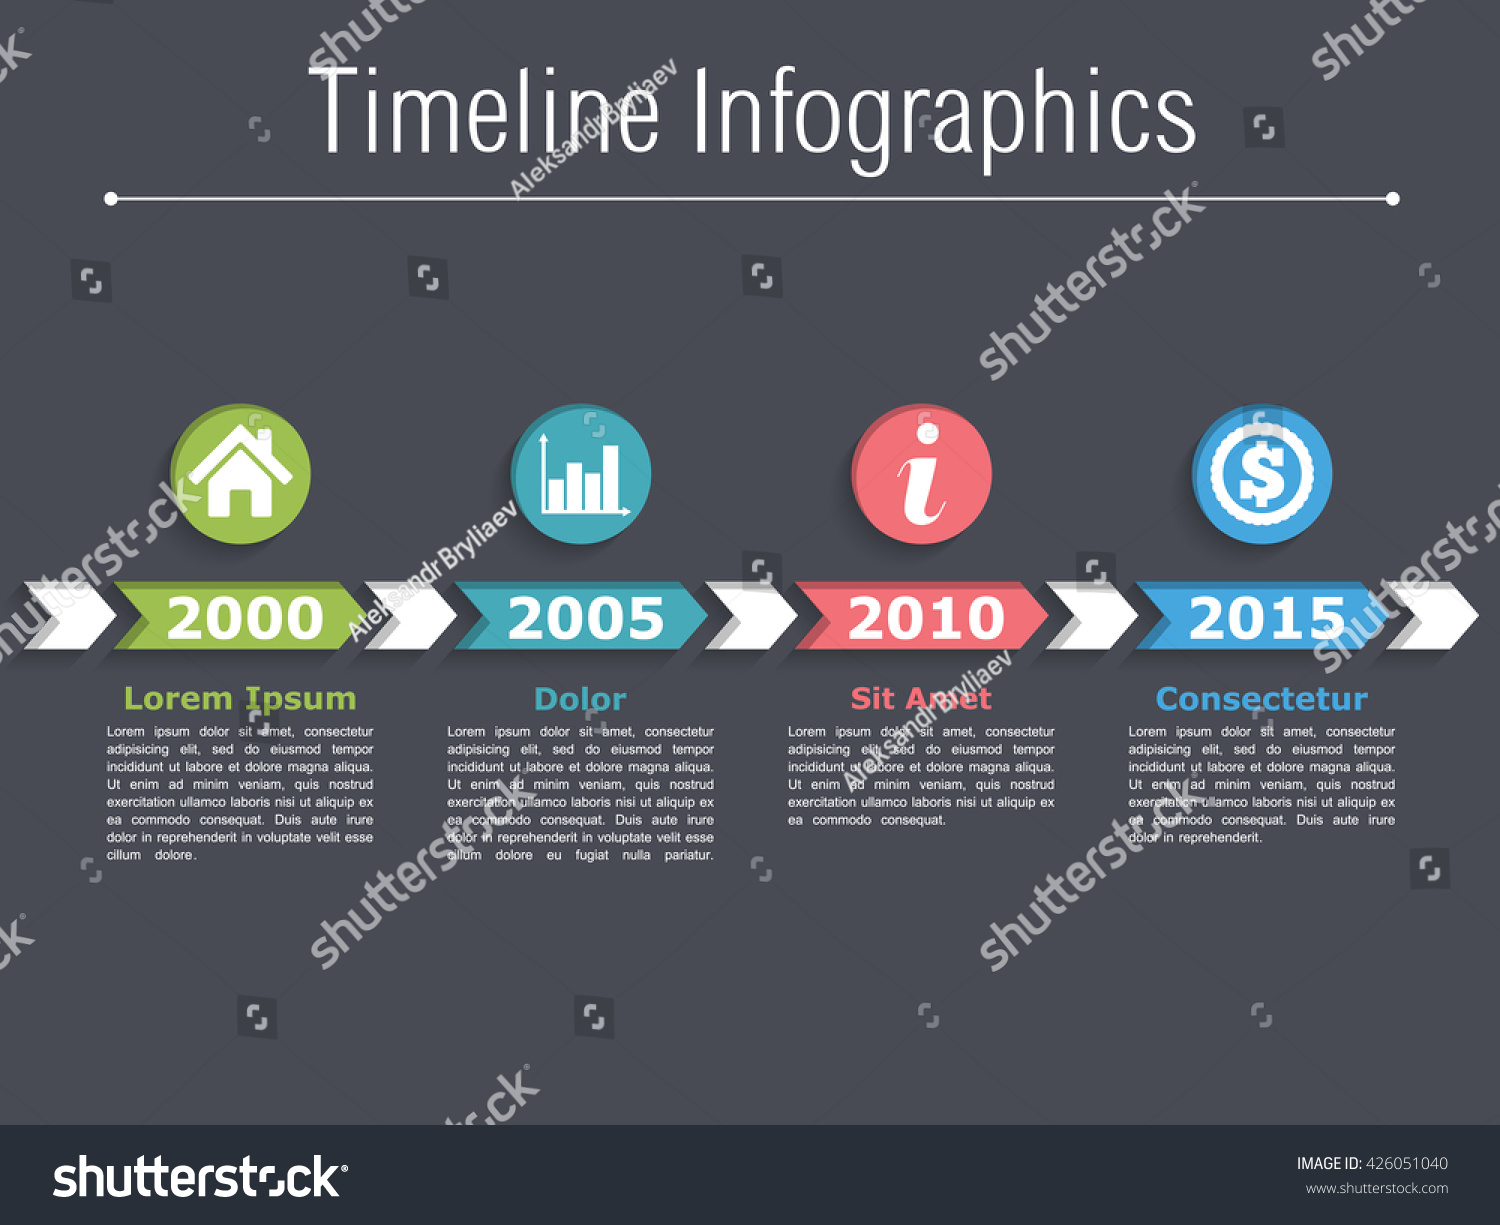 Make infographic animation